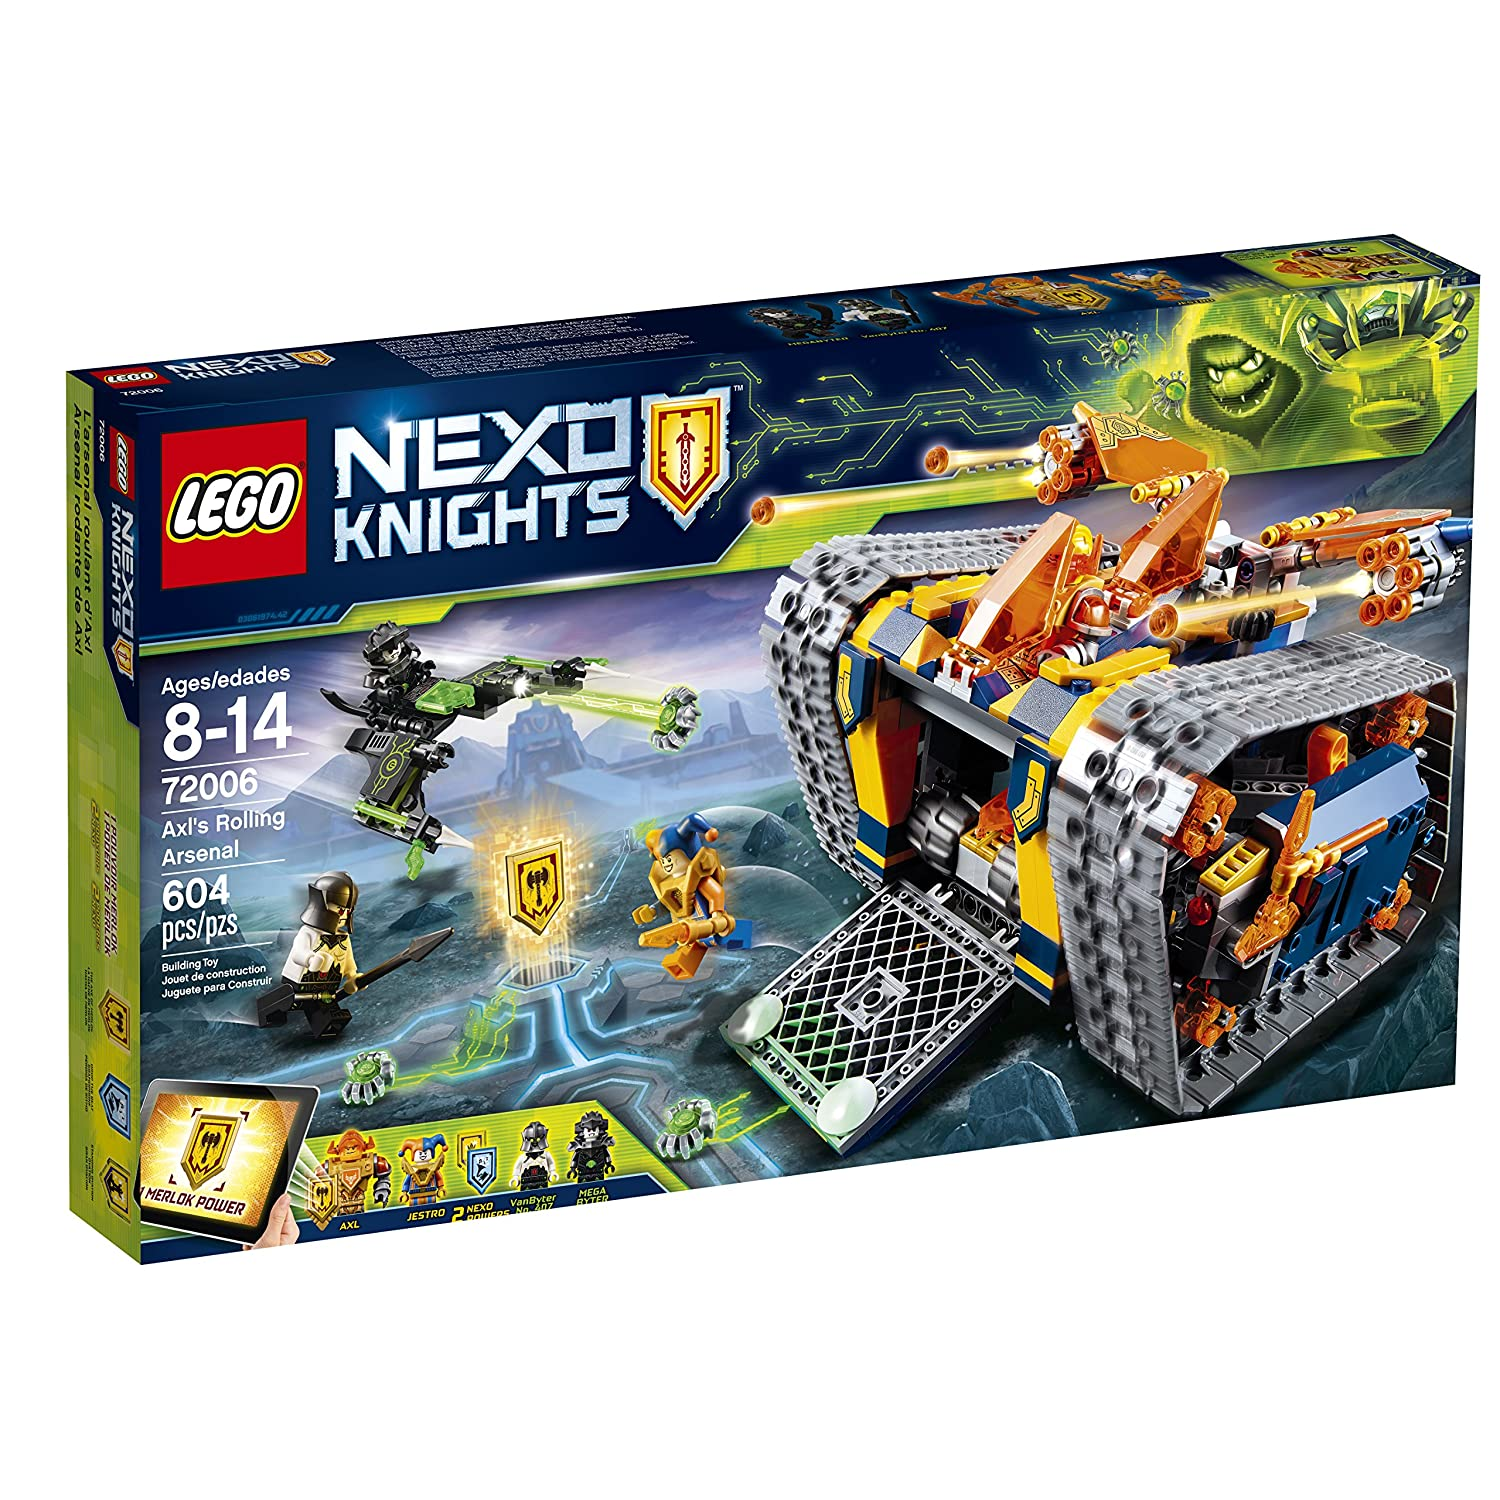 Top 9 Best LEGO Nexo Knights Set Reviews in 2021 14